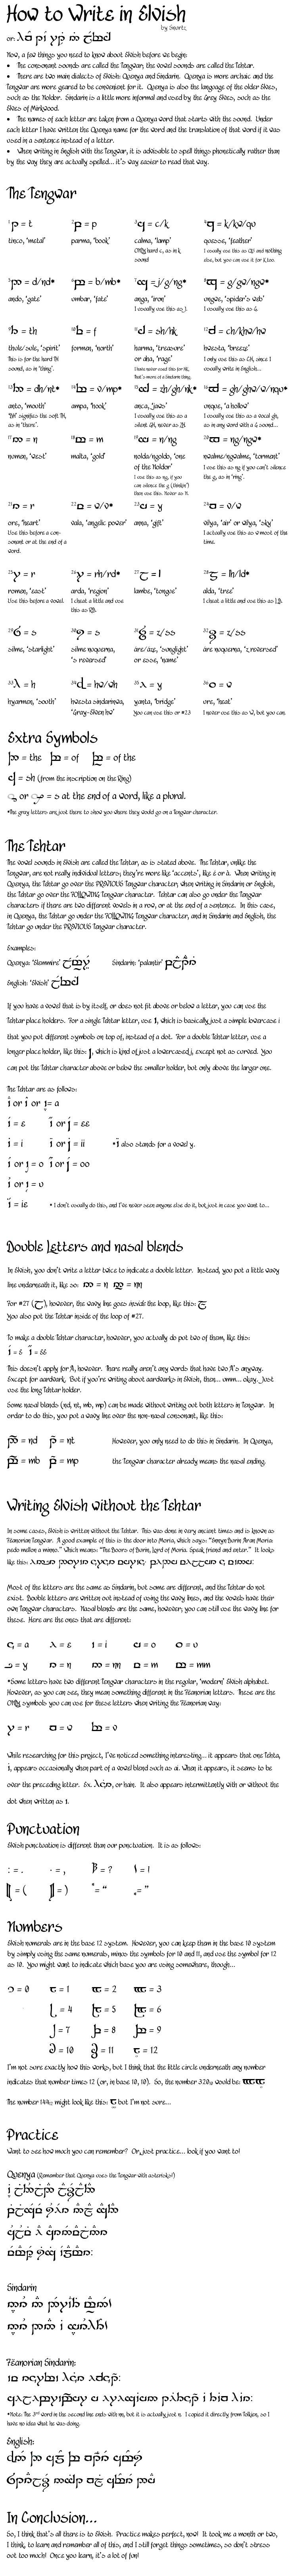 "TUTORIAL: How to write in Elvish.. This is the most detailed and thorough I've ever seen.  Also, check out a lovely book called ""The Languages of Tolkien's Middle Earth"".  It explains elvish (Sindarian and Quenya), Dwarvish, and others.  Written by Ruth S. Noel."